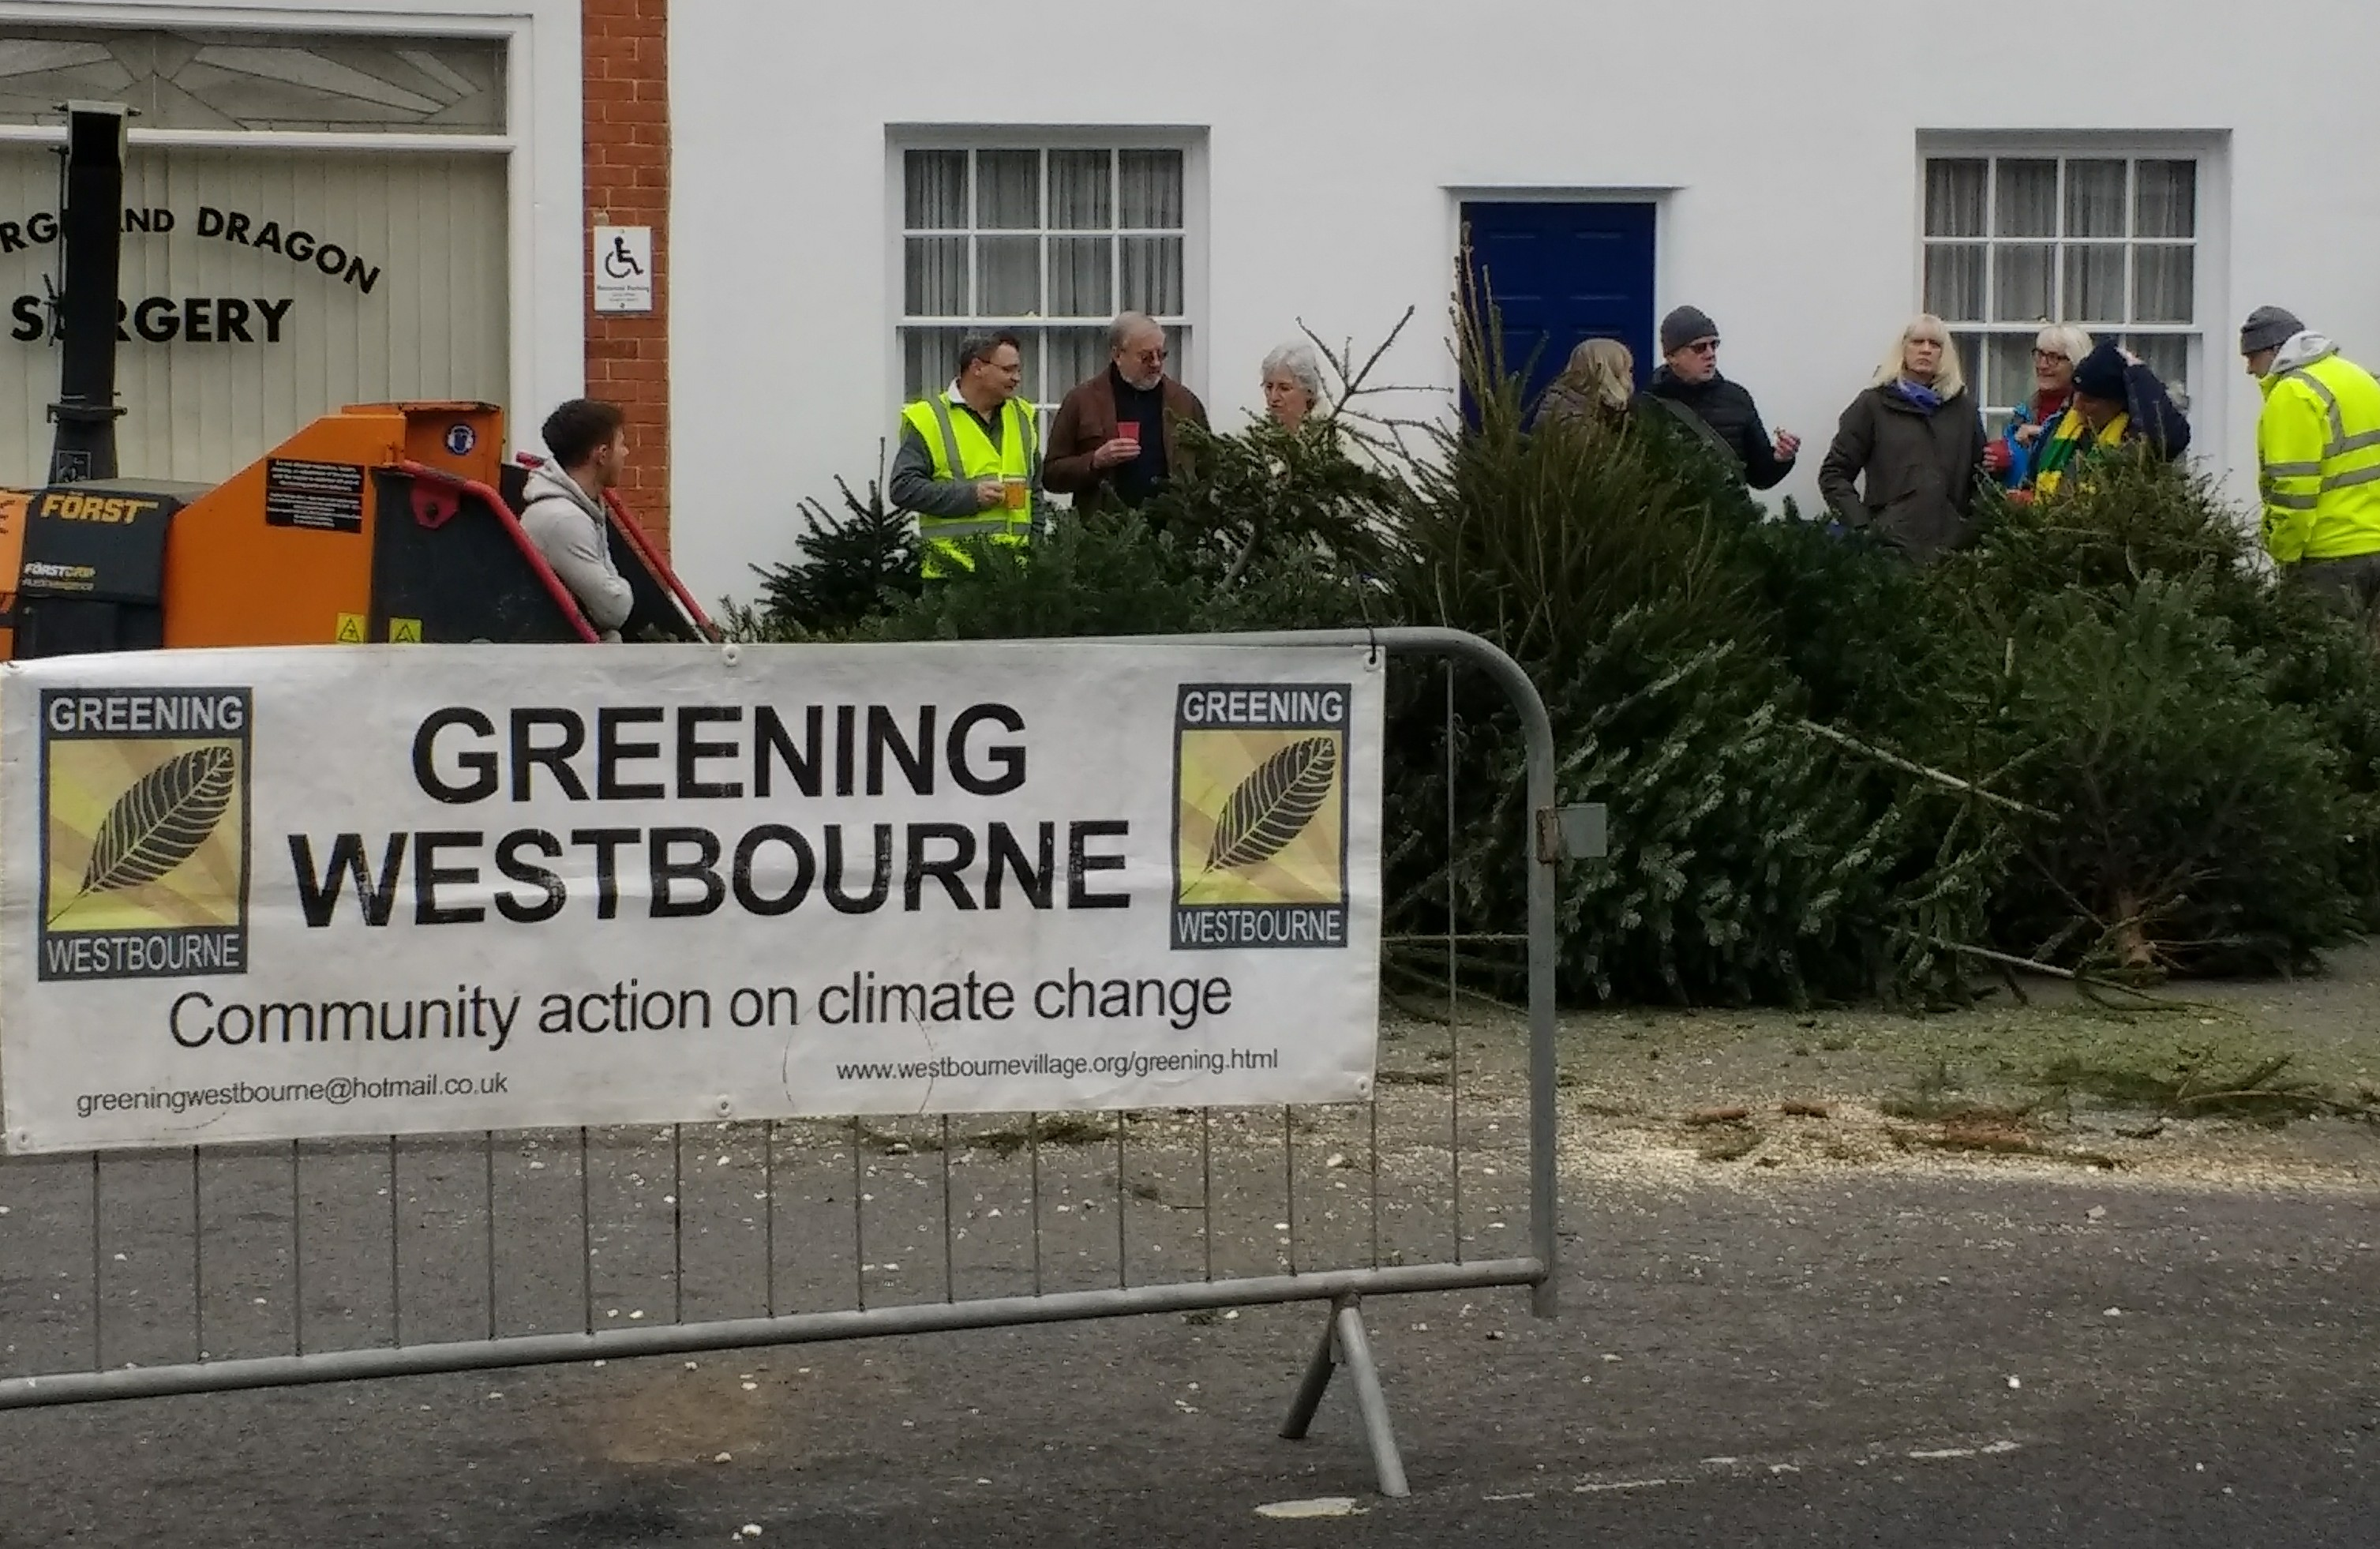 A record 203 Christmas trees recycled!